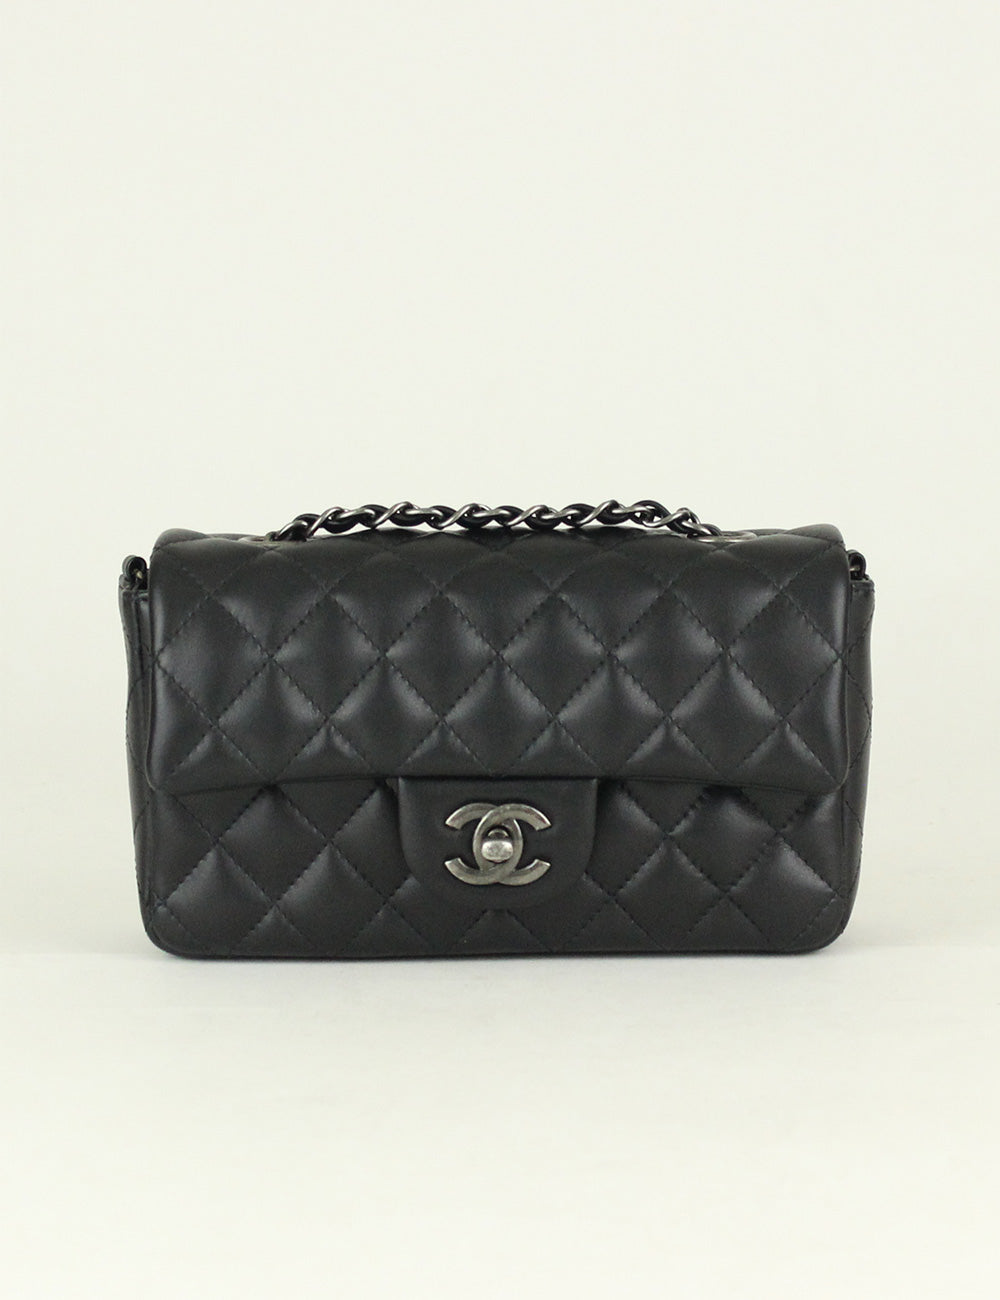 Chanel <br> Rectangular Mini Flap bag